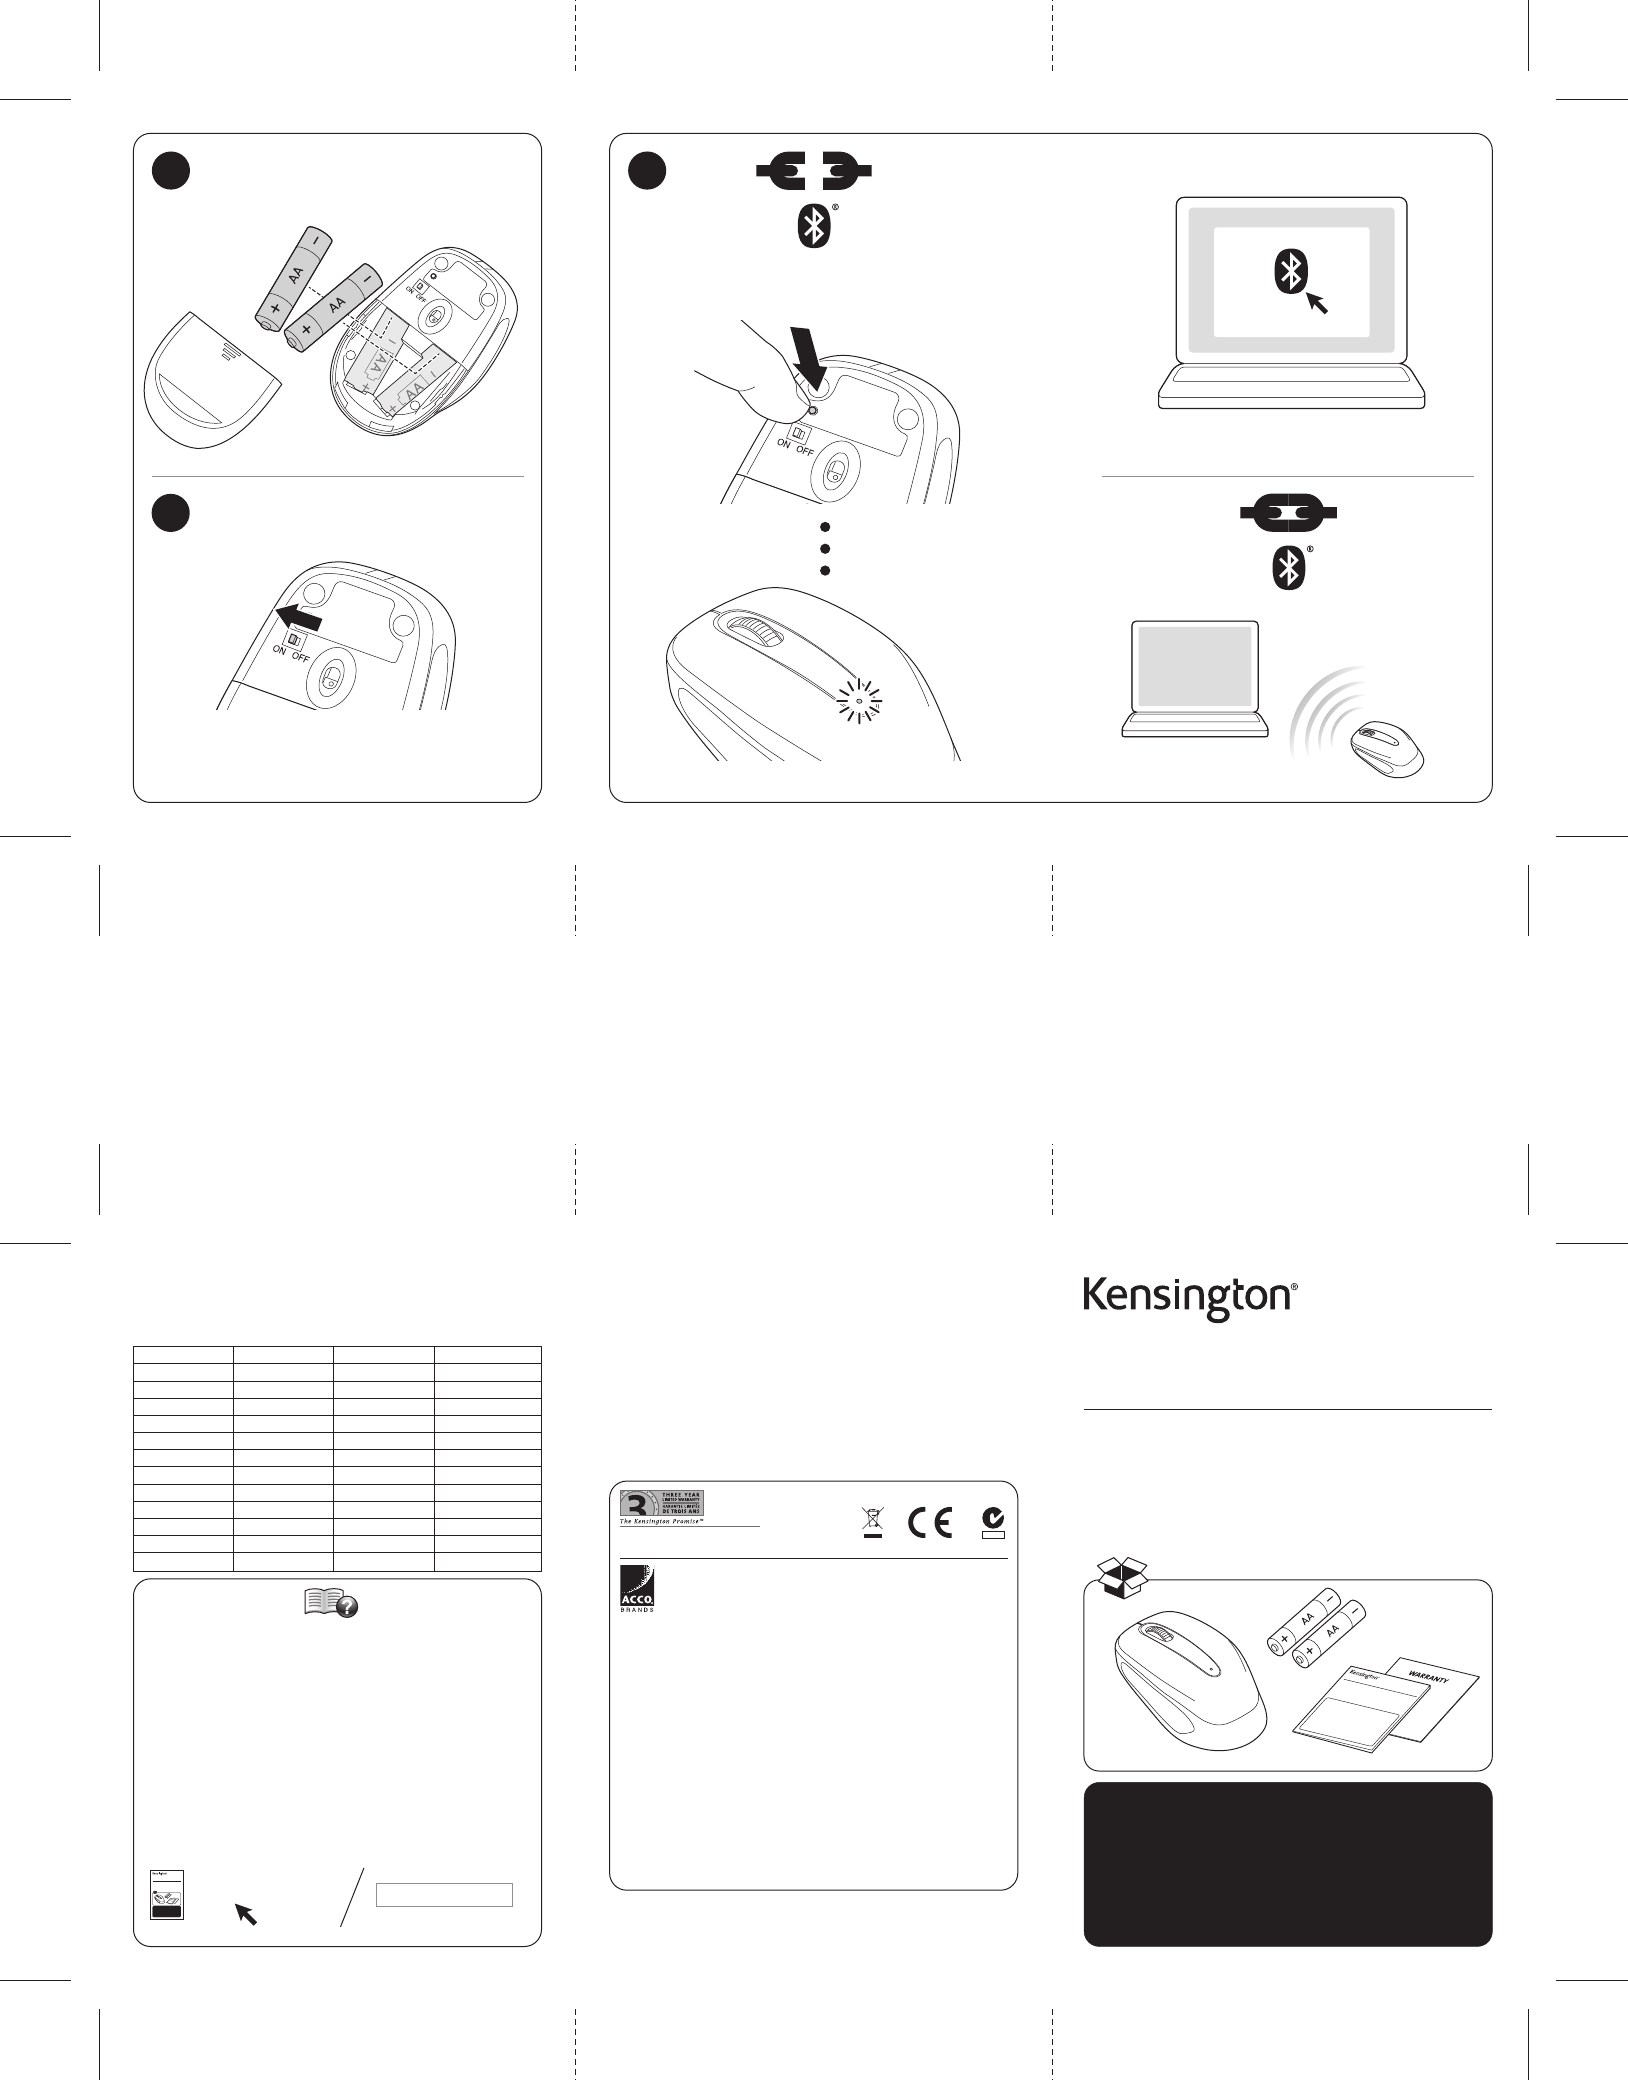 Kensington Tablet Accessory K72437 User Guide